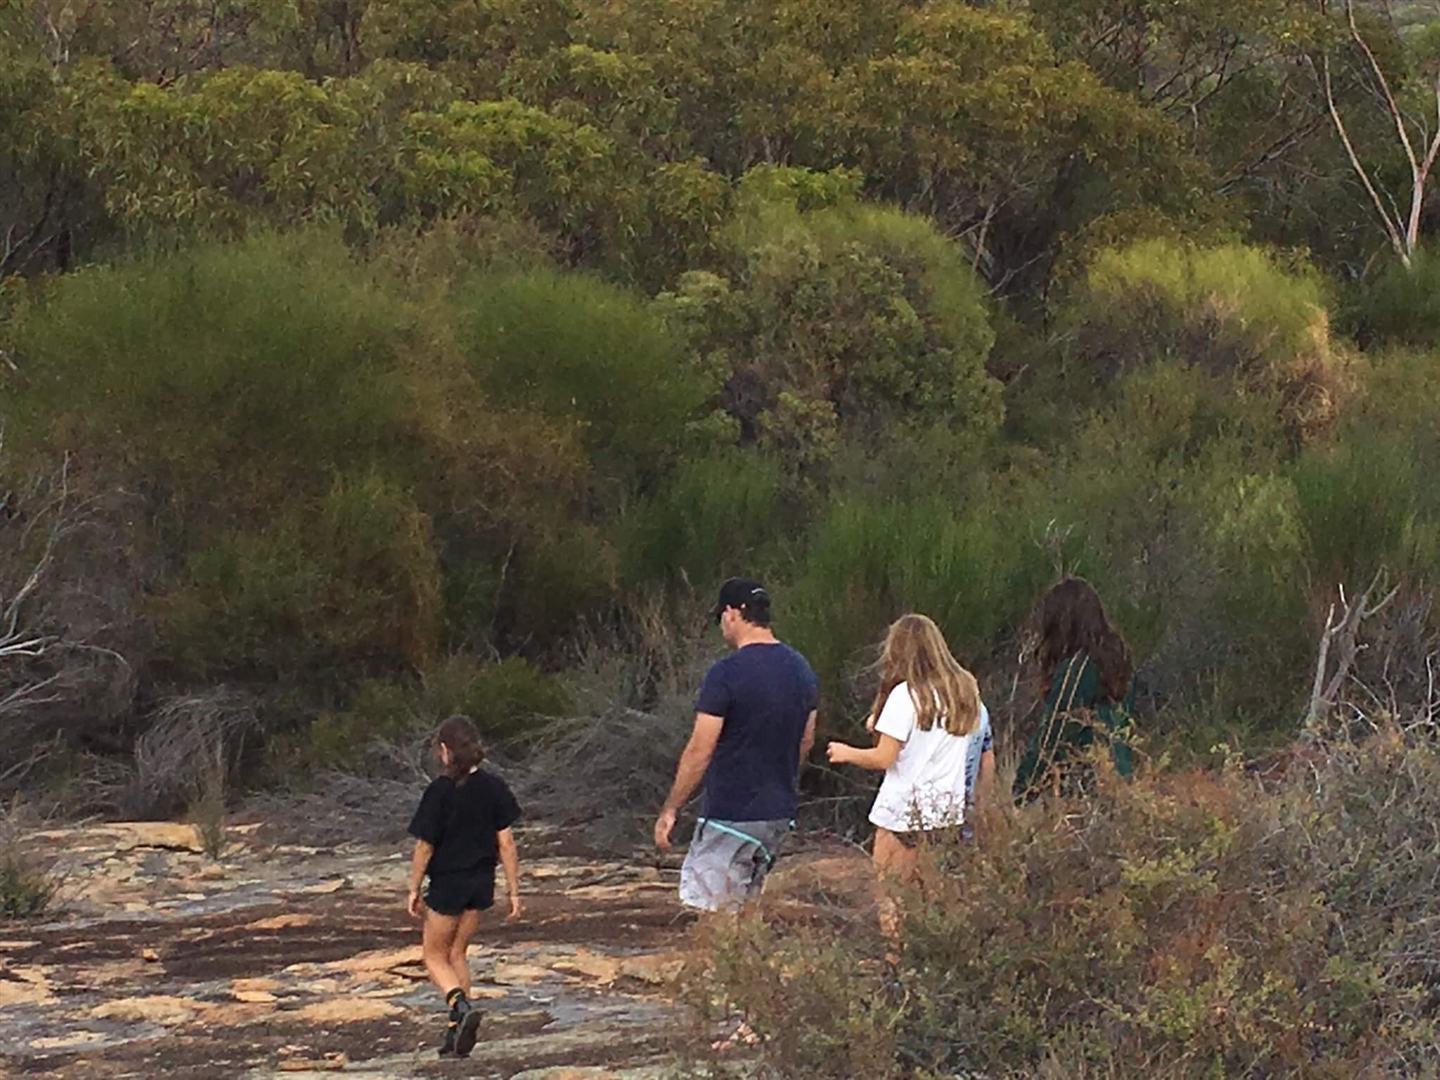 Exploring the Bushland